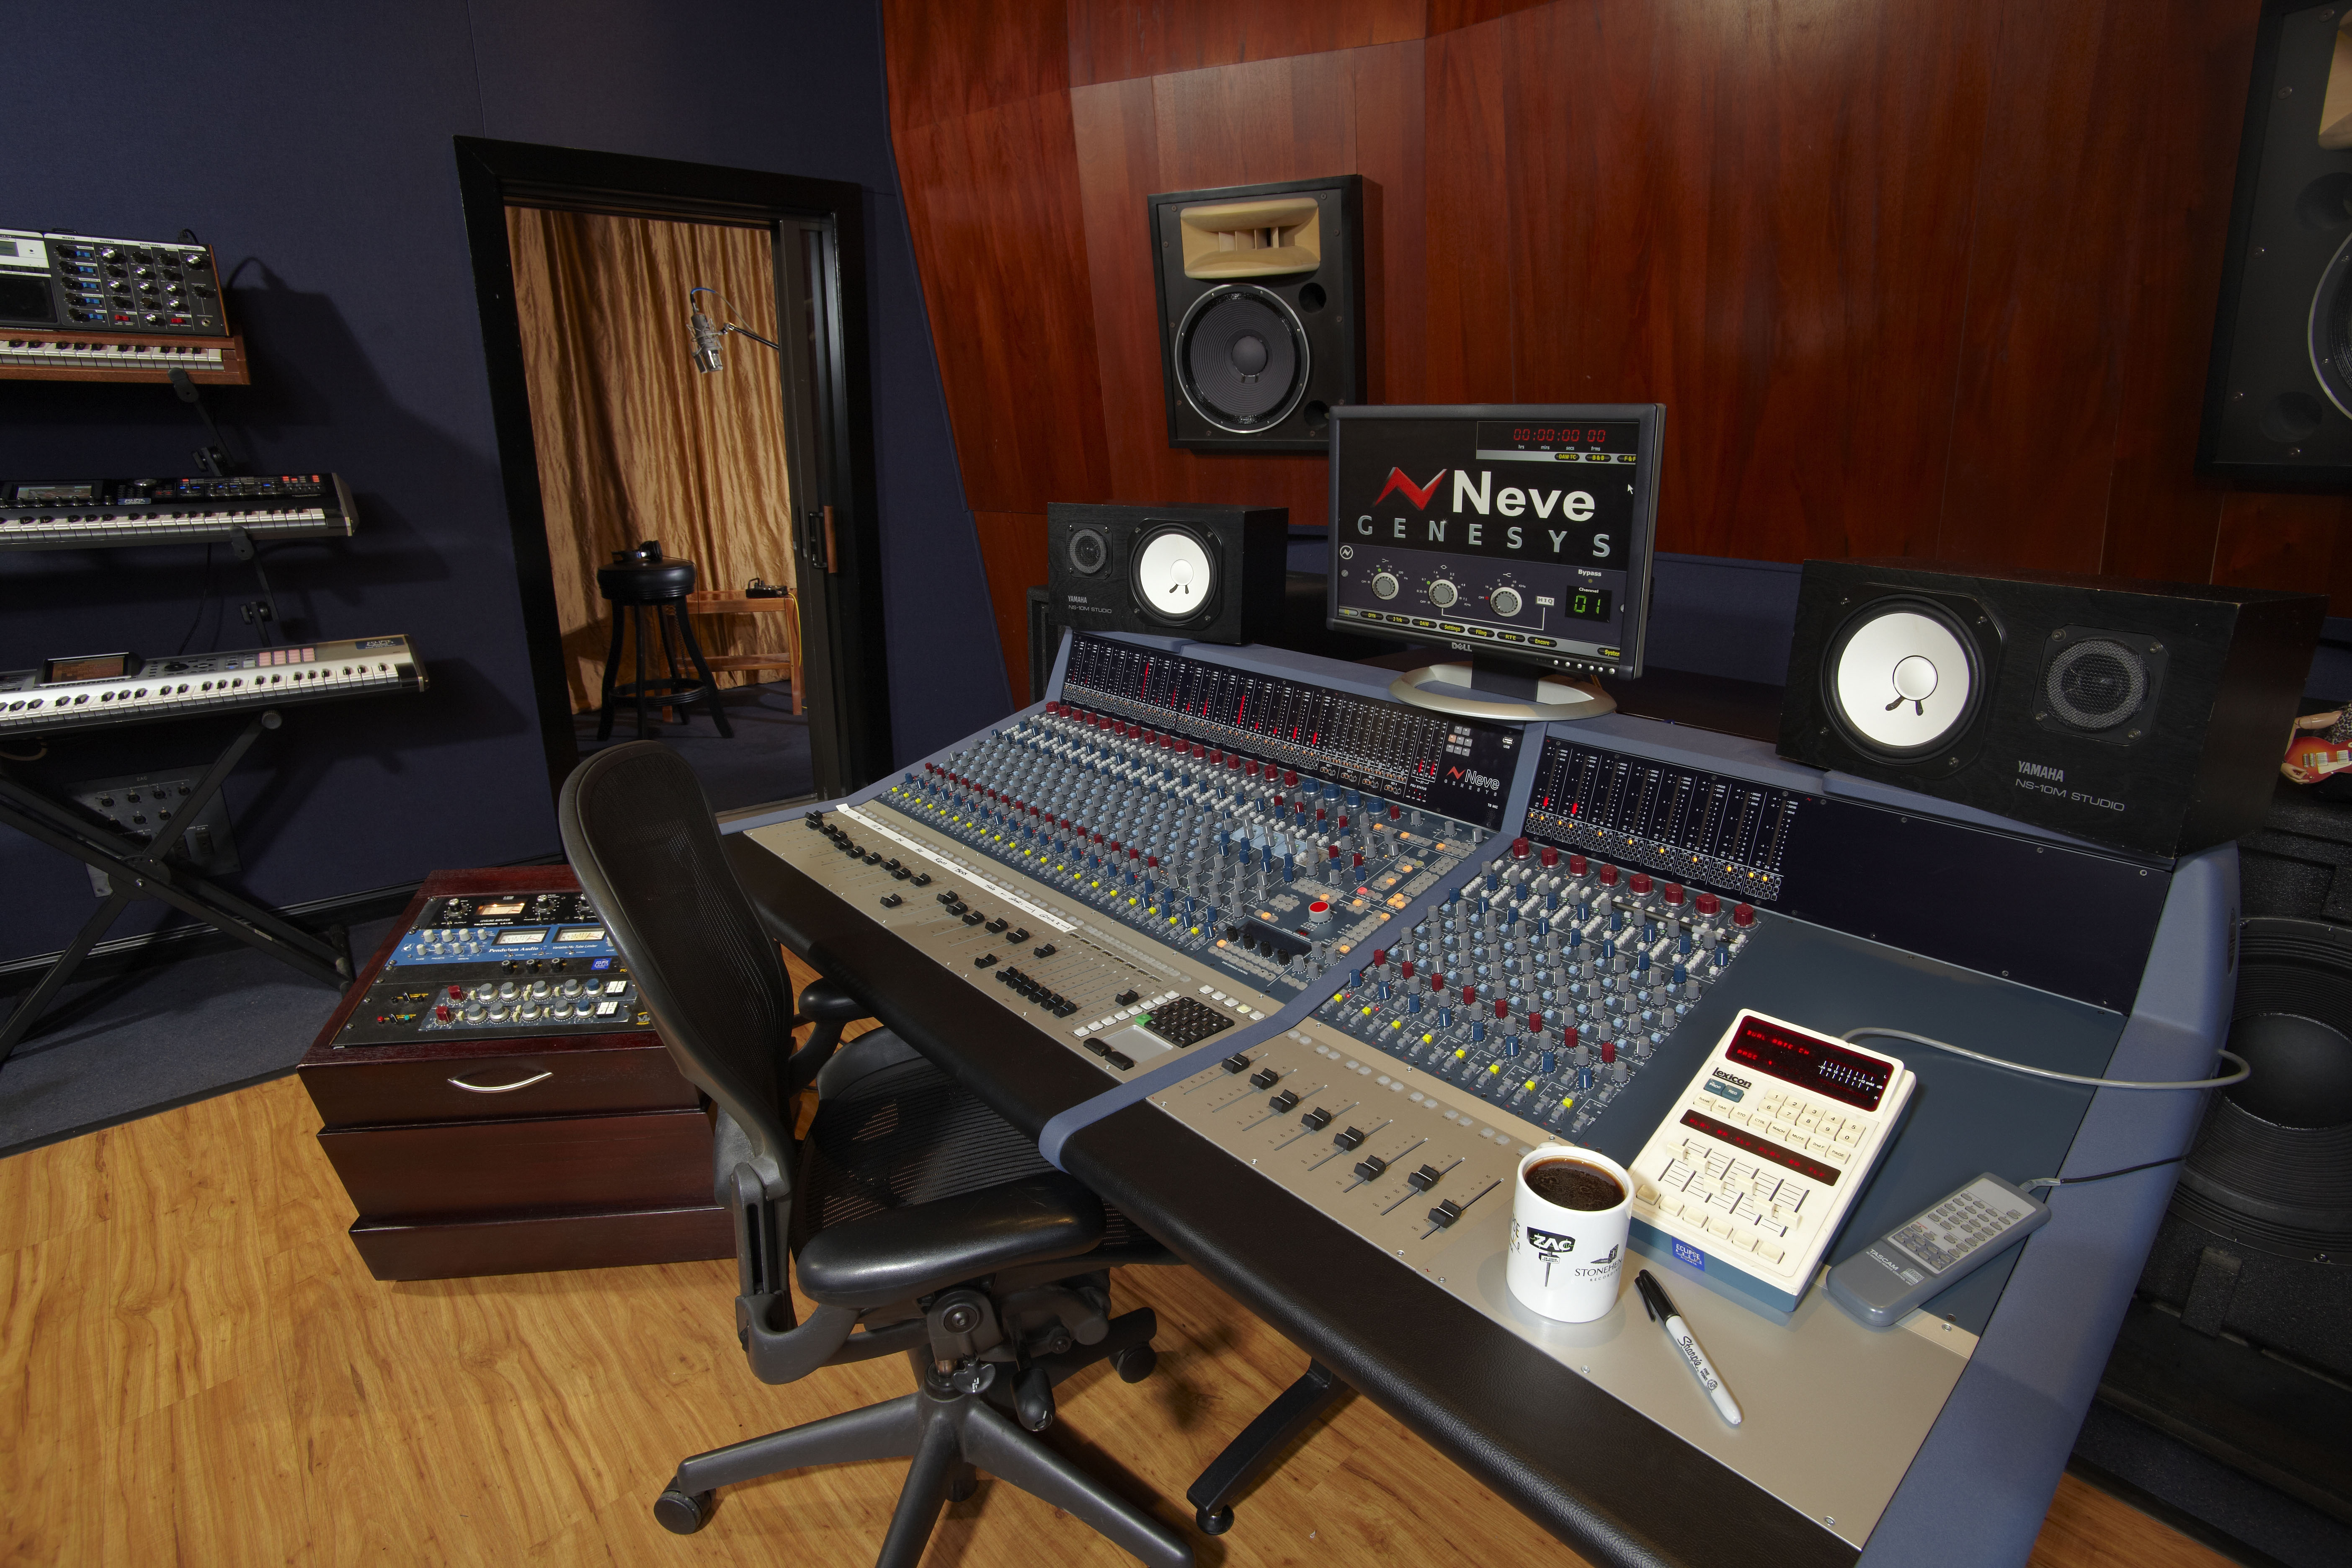 Neve Room booth